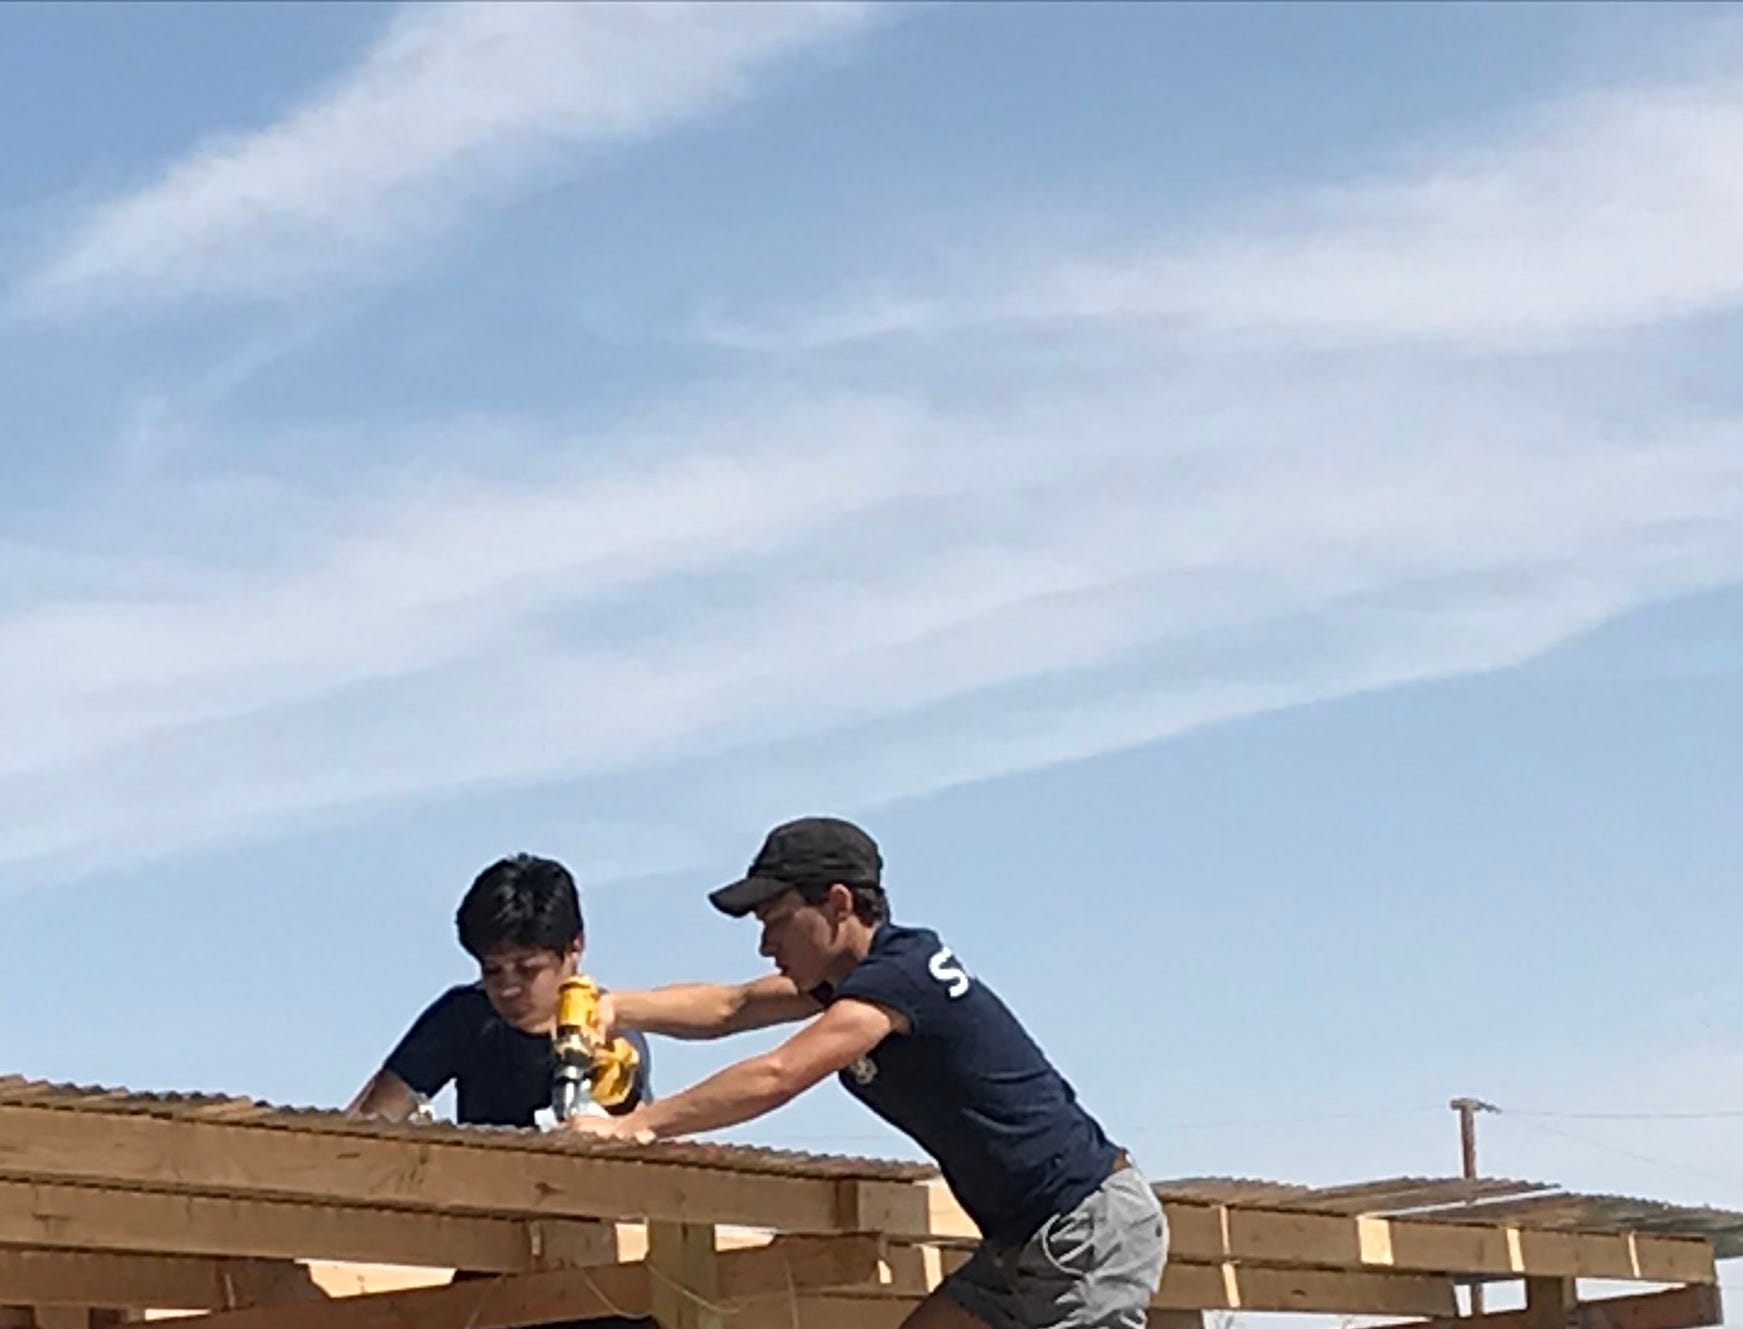 Cordero appreciates his friends from his troop and Montwood school who helped him with the project.